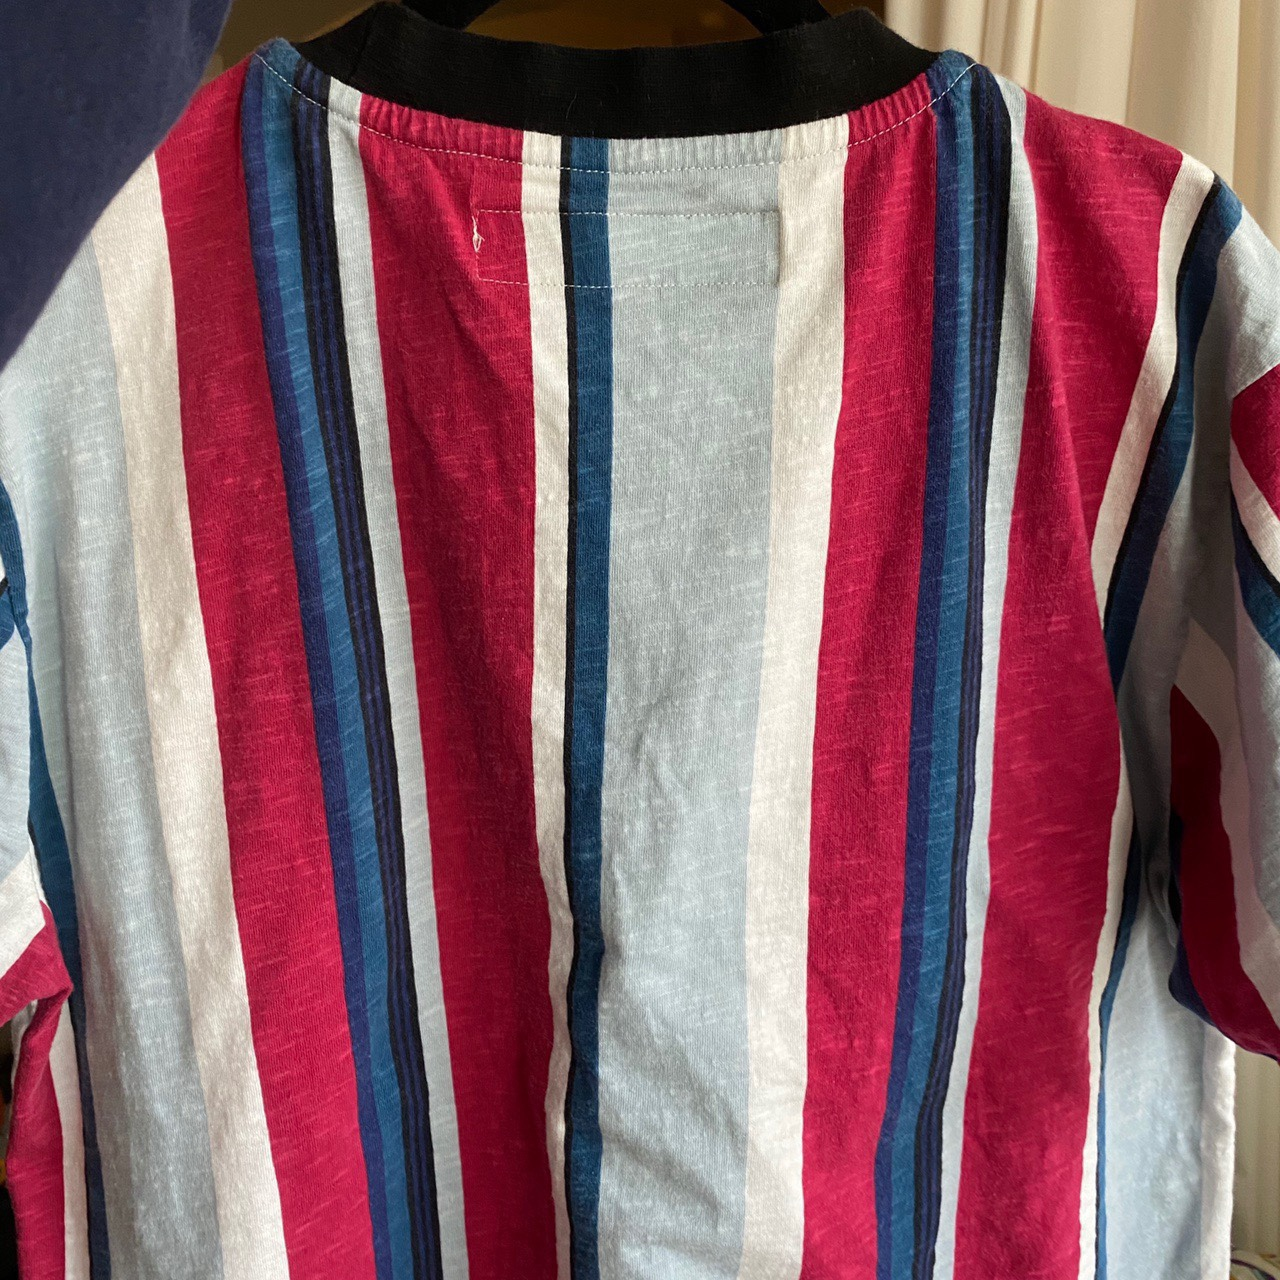 Product Image 3 - Guess sayer stripe tee This